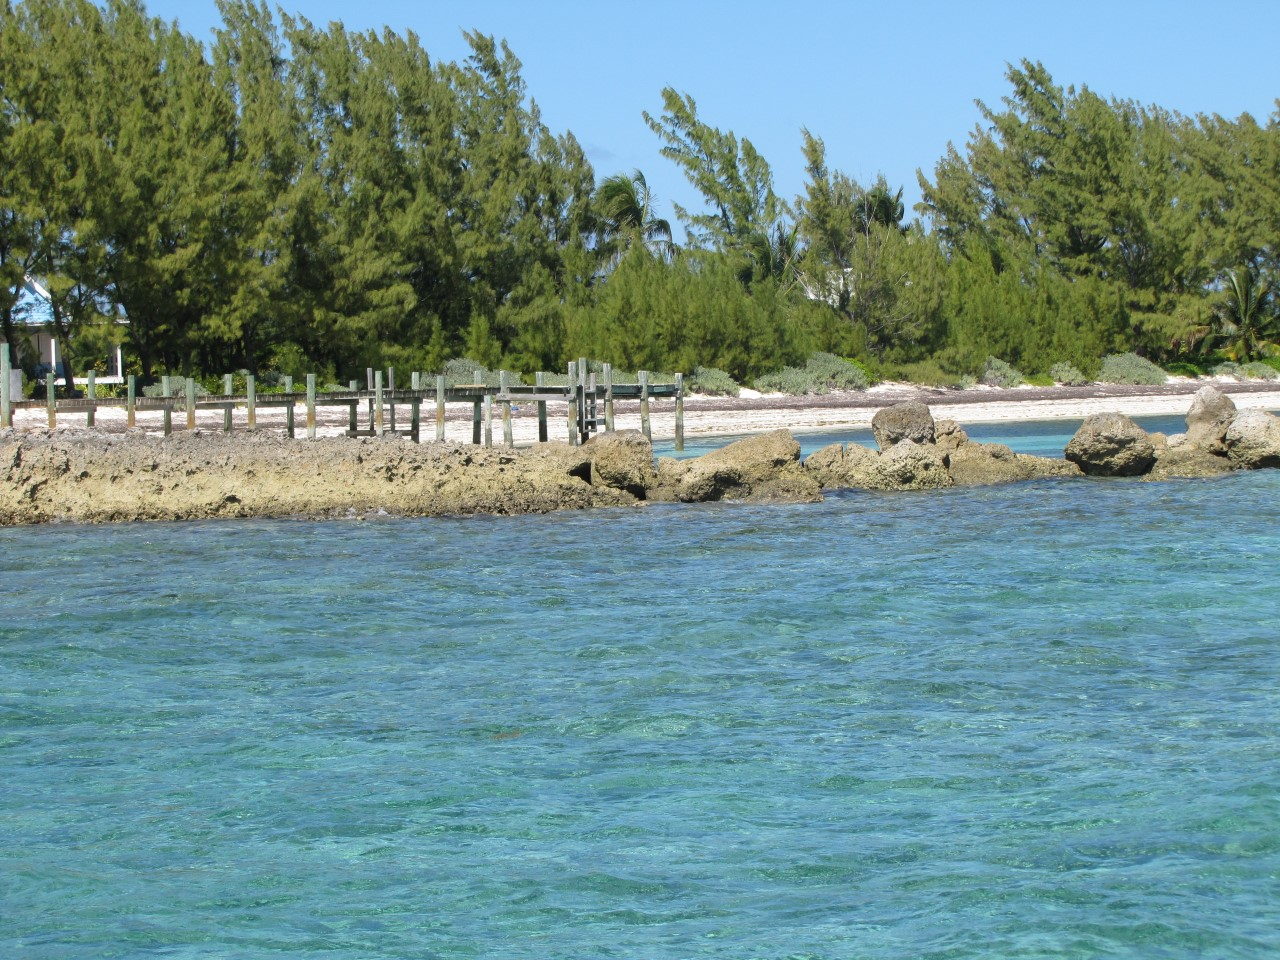 Private island for sale in the Bahamas